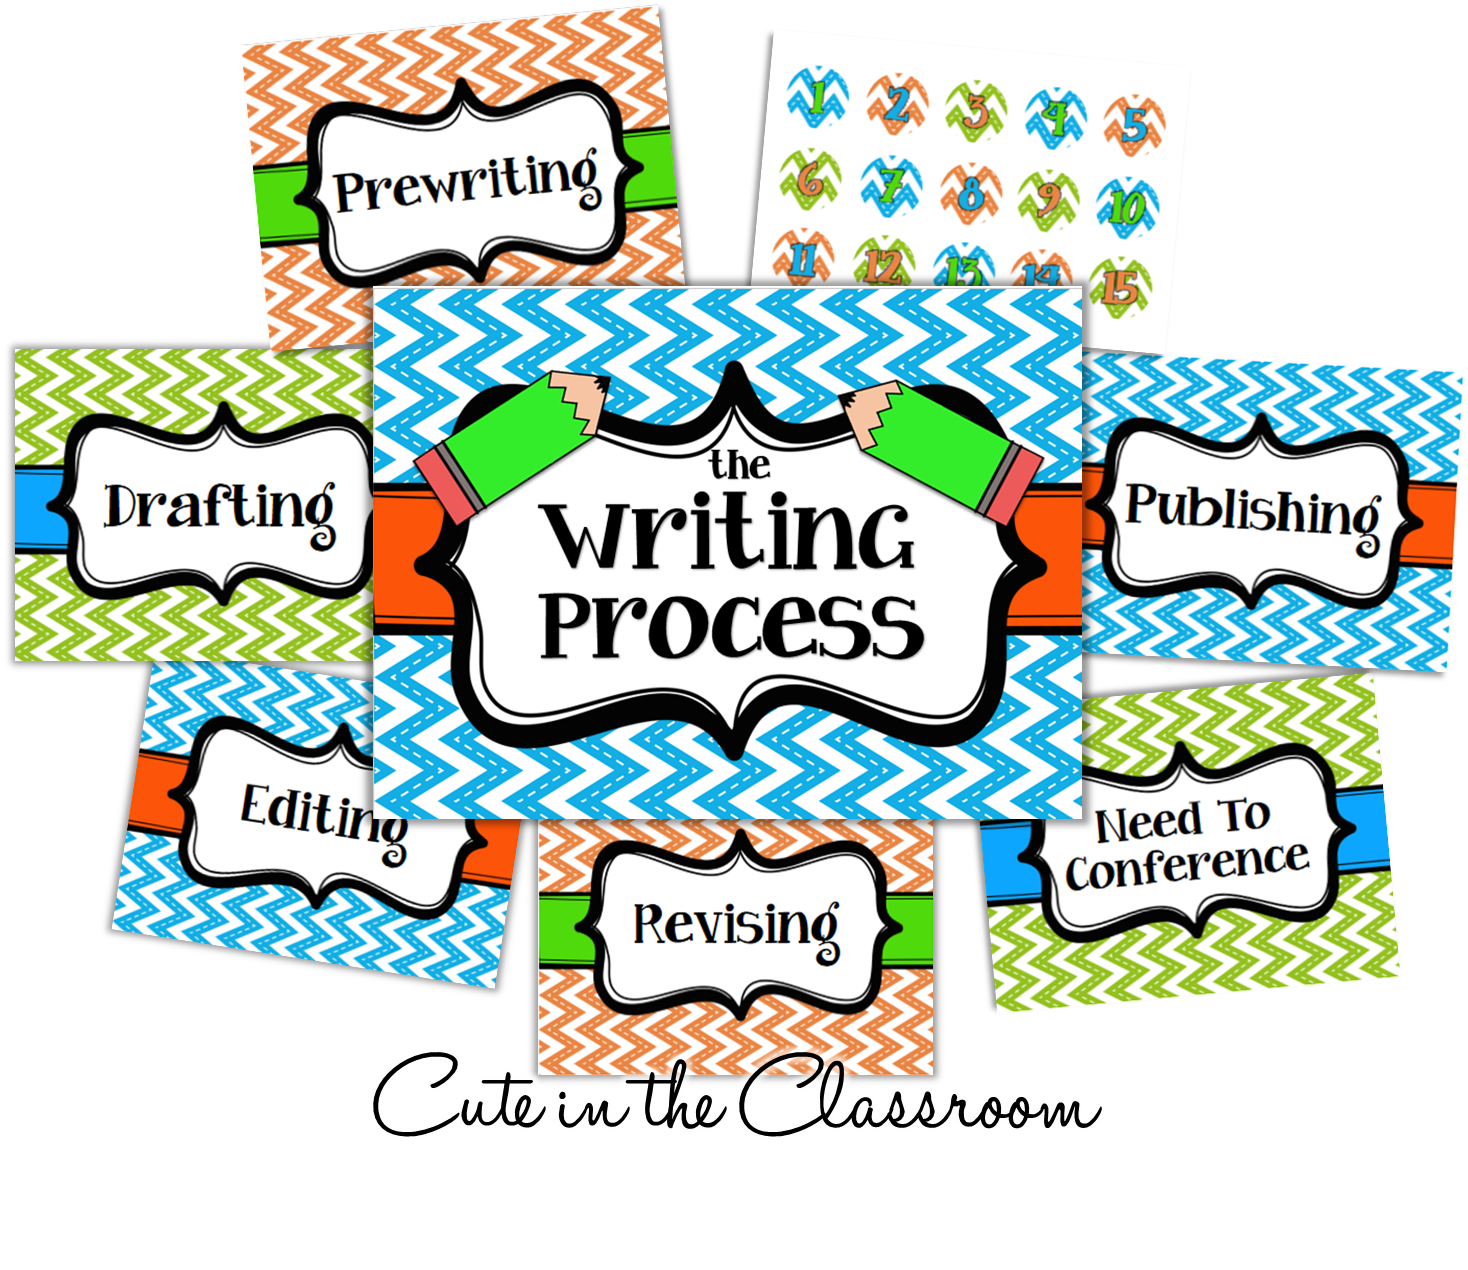 http://www.teacherspayteachers.com/Product/The-Writing-Process-Chart-FREEBIE-1351802